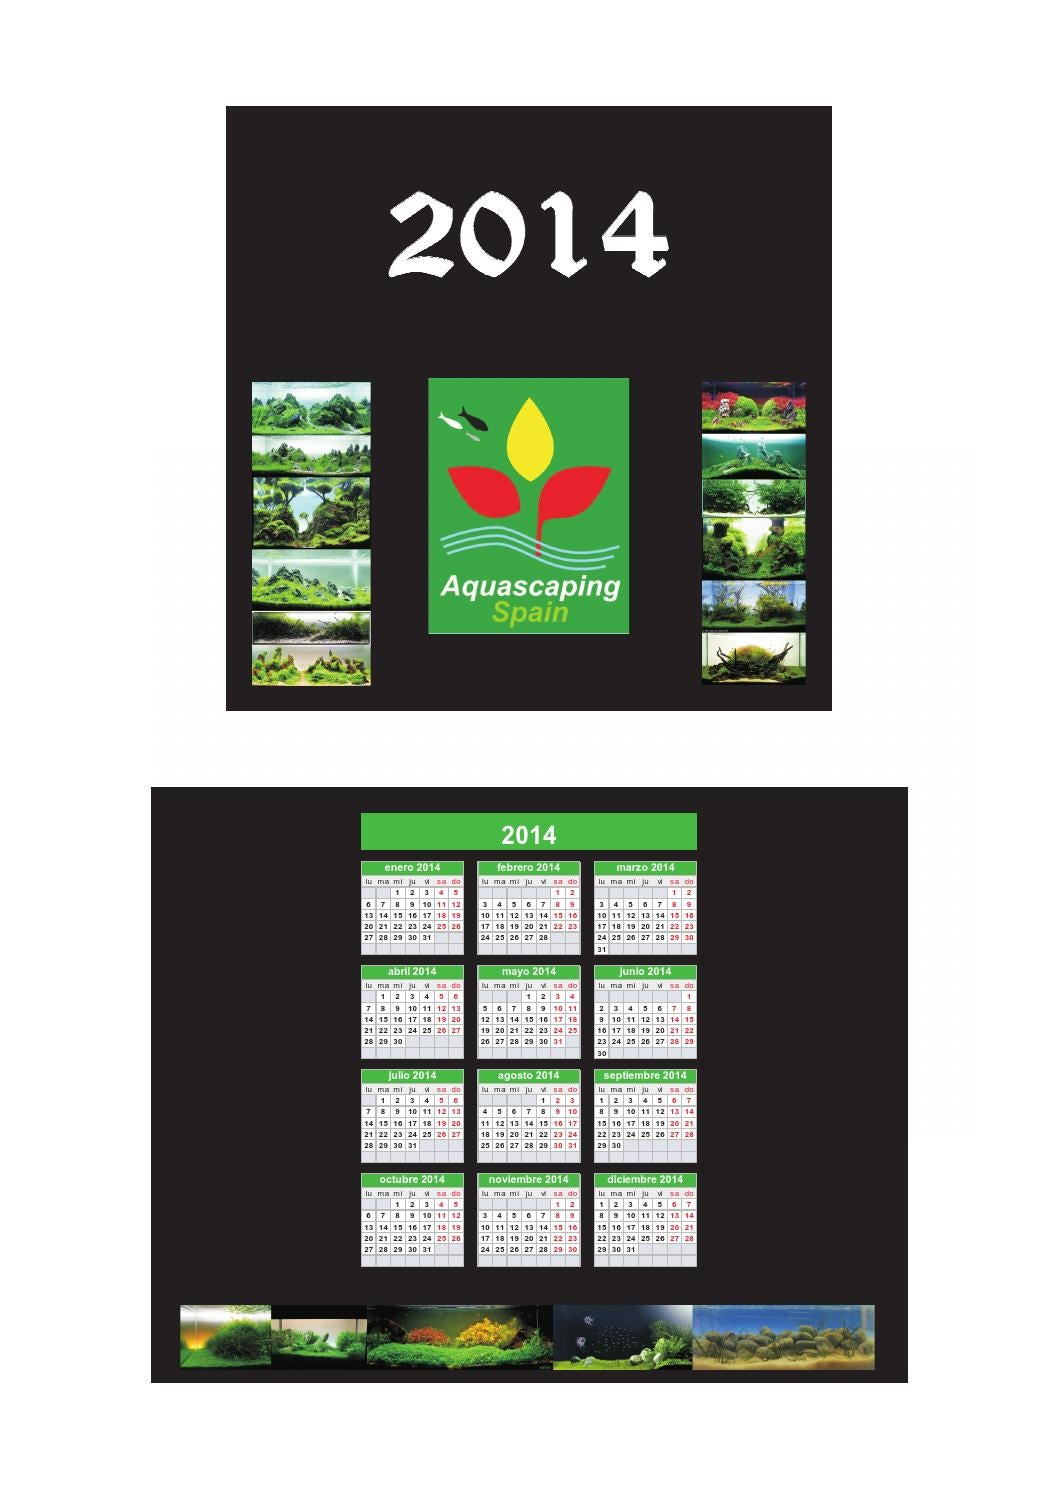 Cd calendario aquascaping spain 2014 by acuarios grifon issuu - Aquascape espana ...